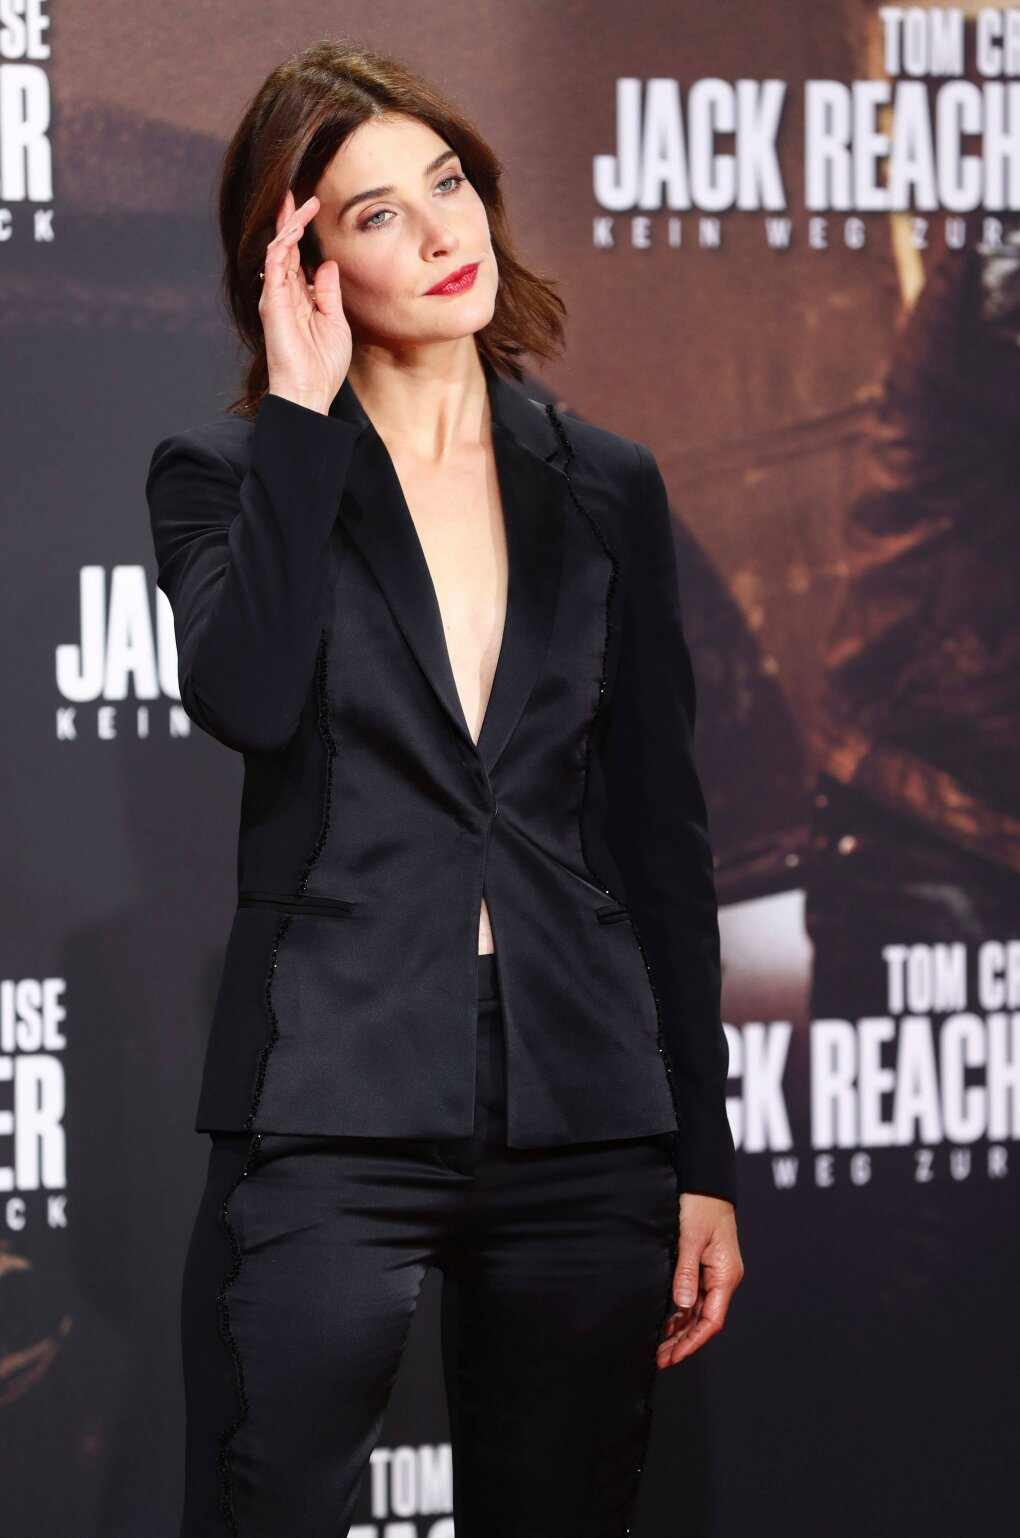 cobie smulders rocking suit